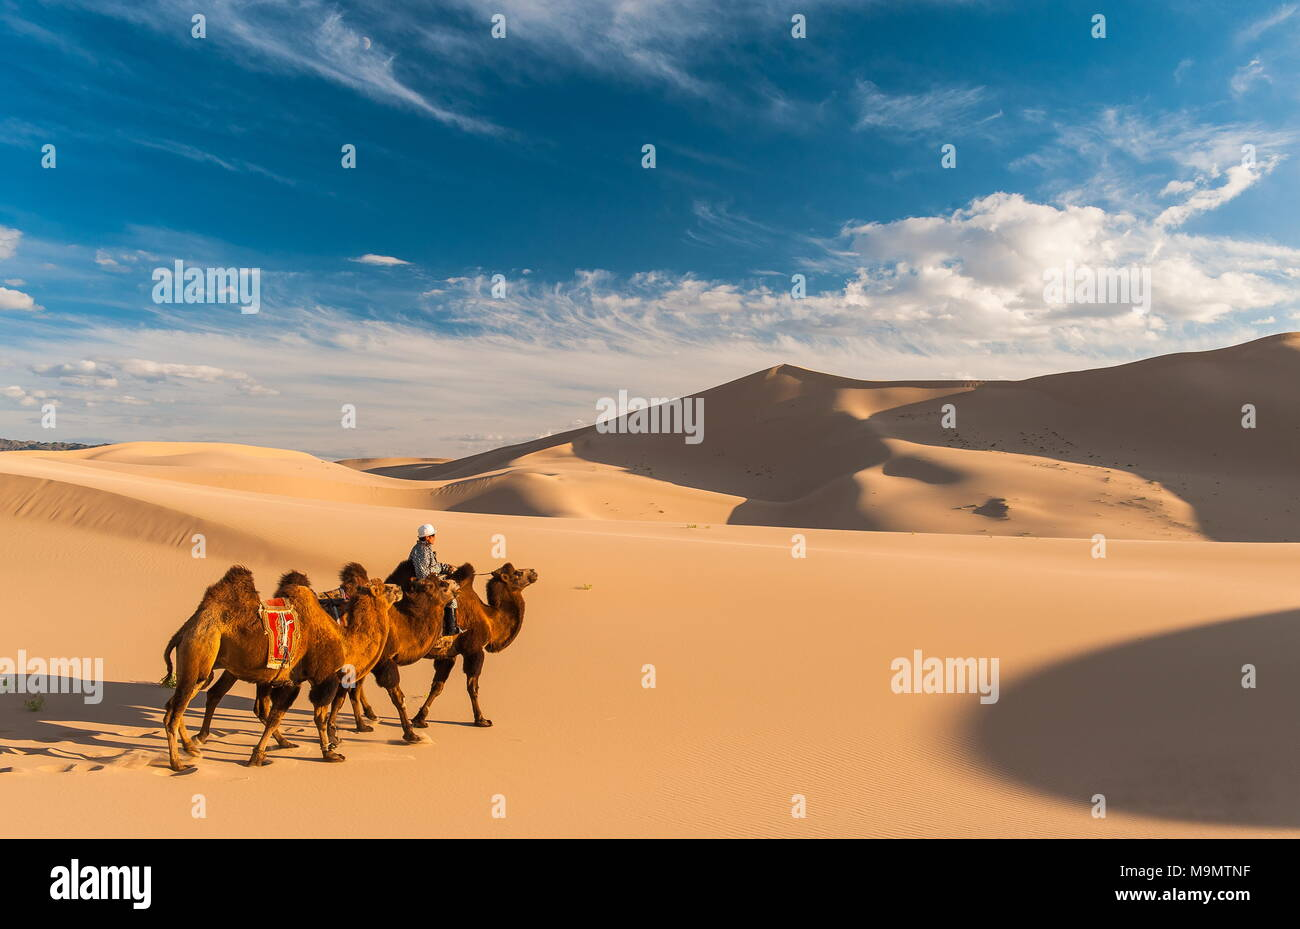 Nomad with camels (Camelidae) riding through the sand dunes, Gobi desert, Mongolia - Stock Image